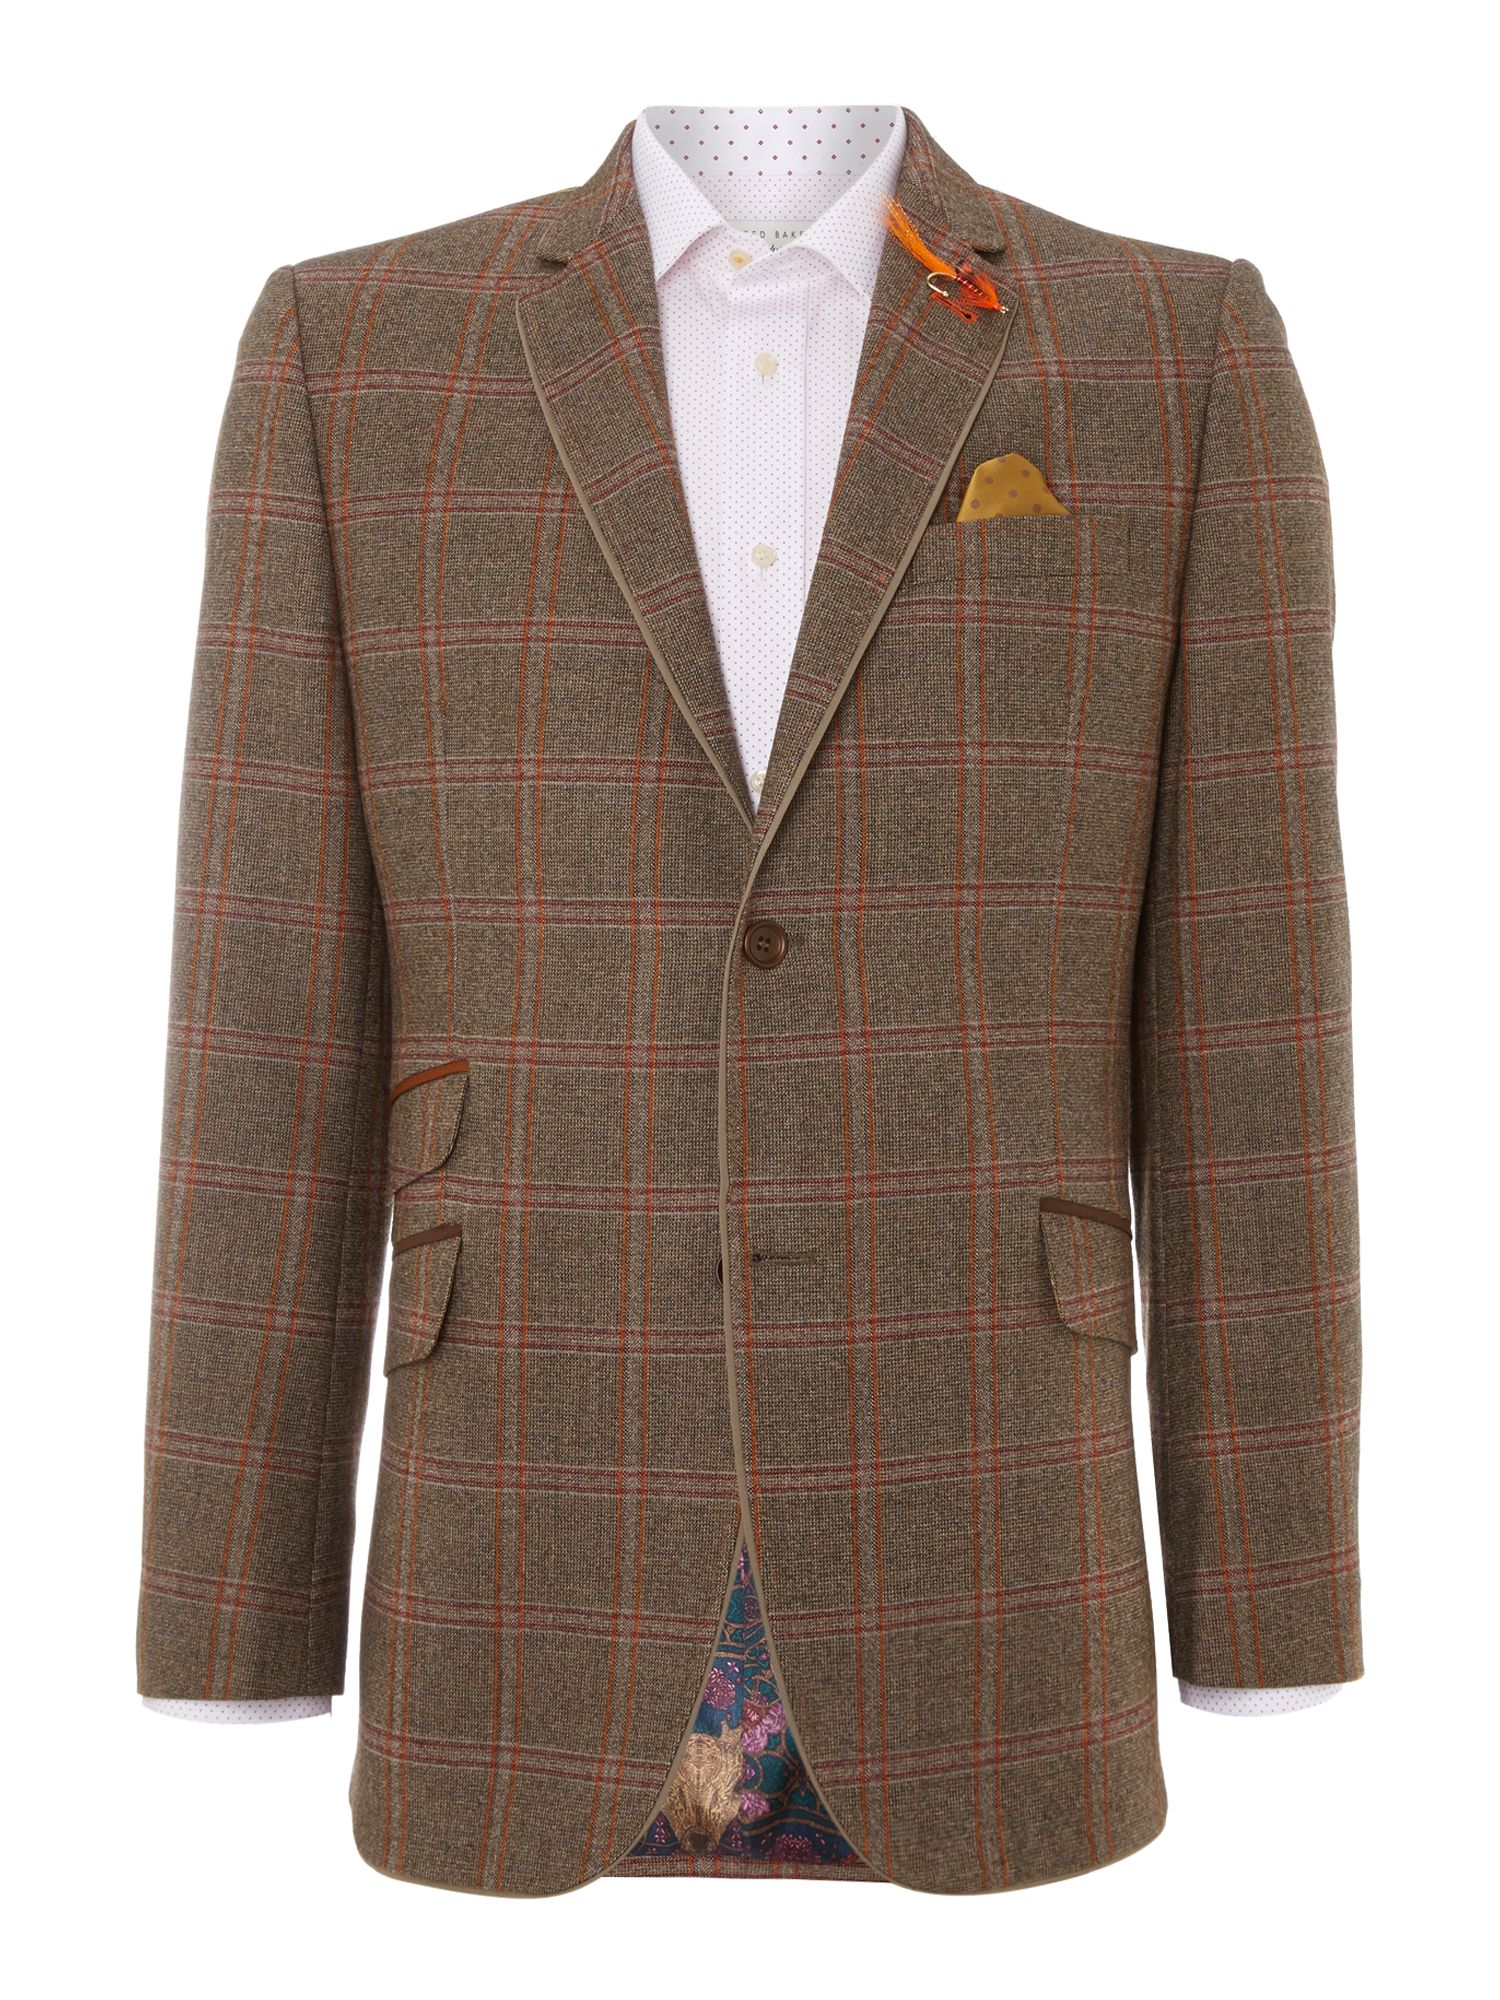 Looking For Mens Tweed 3 Piece Check Suits, Mens Tweed Wedding Suit, Mens Tweed Jacket and Waistcoats with Blue, Grey & Brown colour? Go to heresfilmz8.ga! Looking For Mens Tweed 3 Piece Check Suits, Mens Tweed Wedding Suit, Mens Tweed Jacket and Waistcoats with Blue, Grey & Brown colour? Mens Tweed Suits, your one stop shop for all.